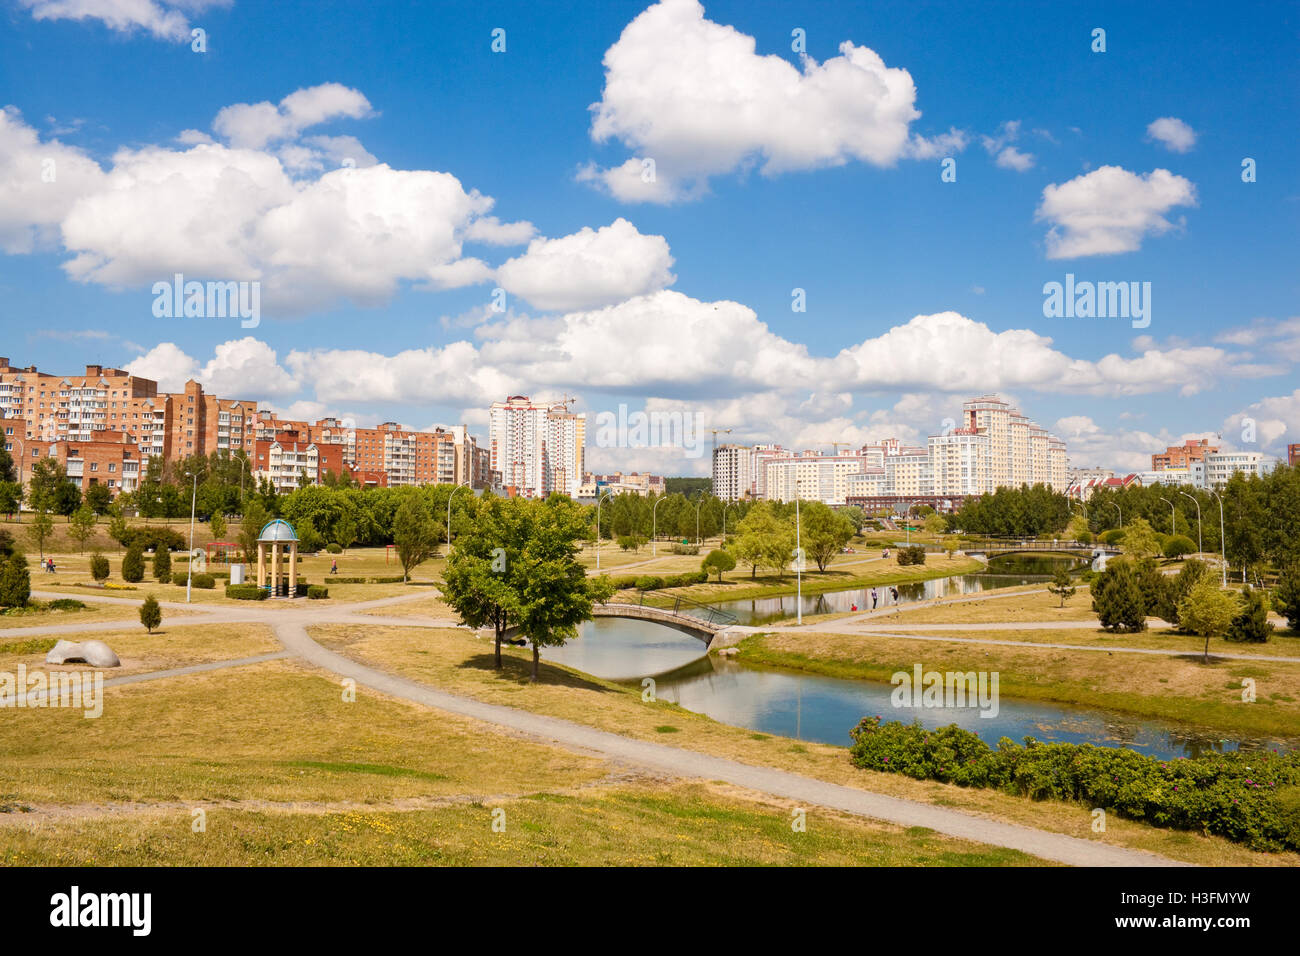 Park and river in Uruchje district, Minsk, Belarus - Stock Image